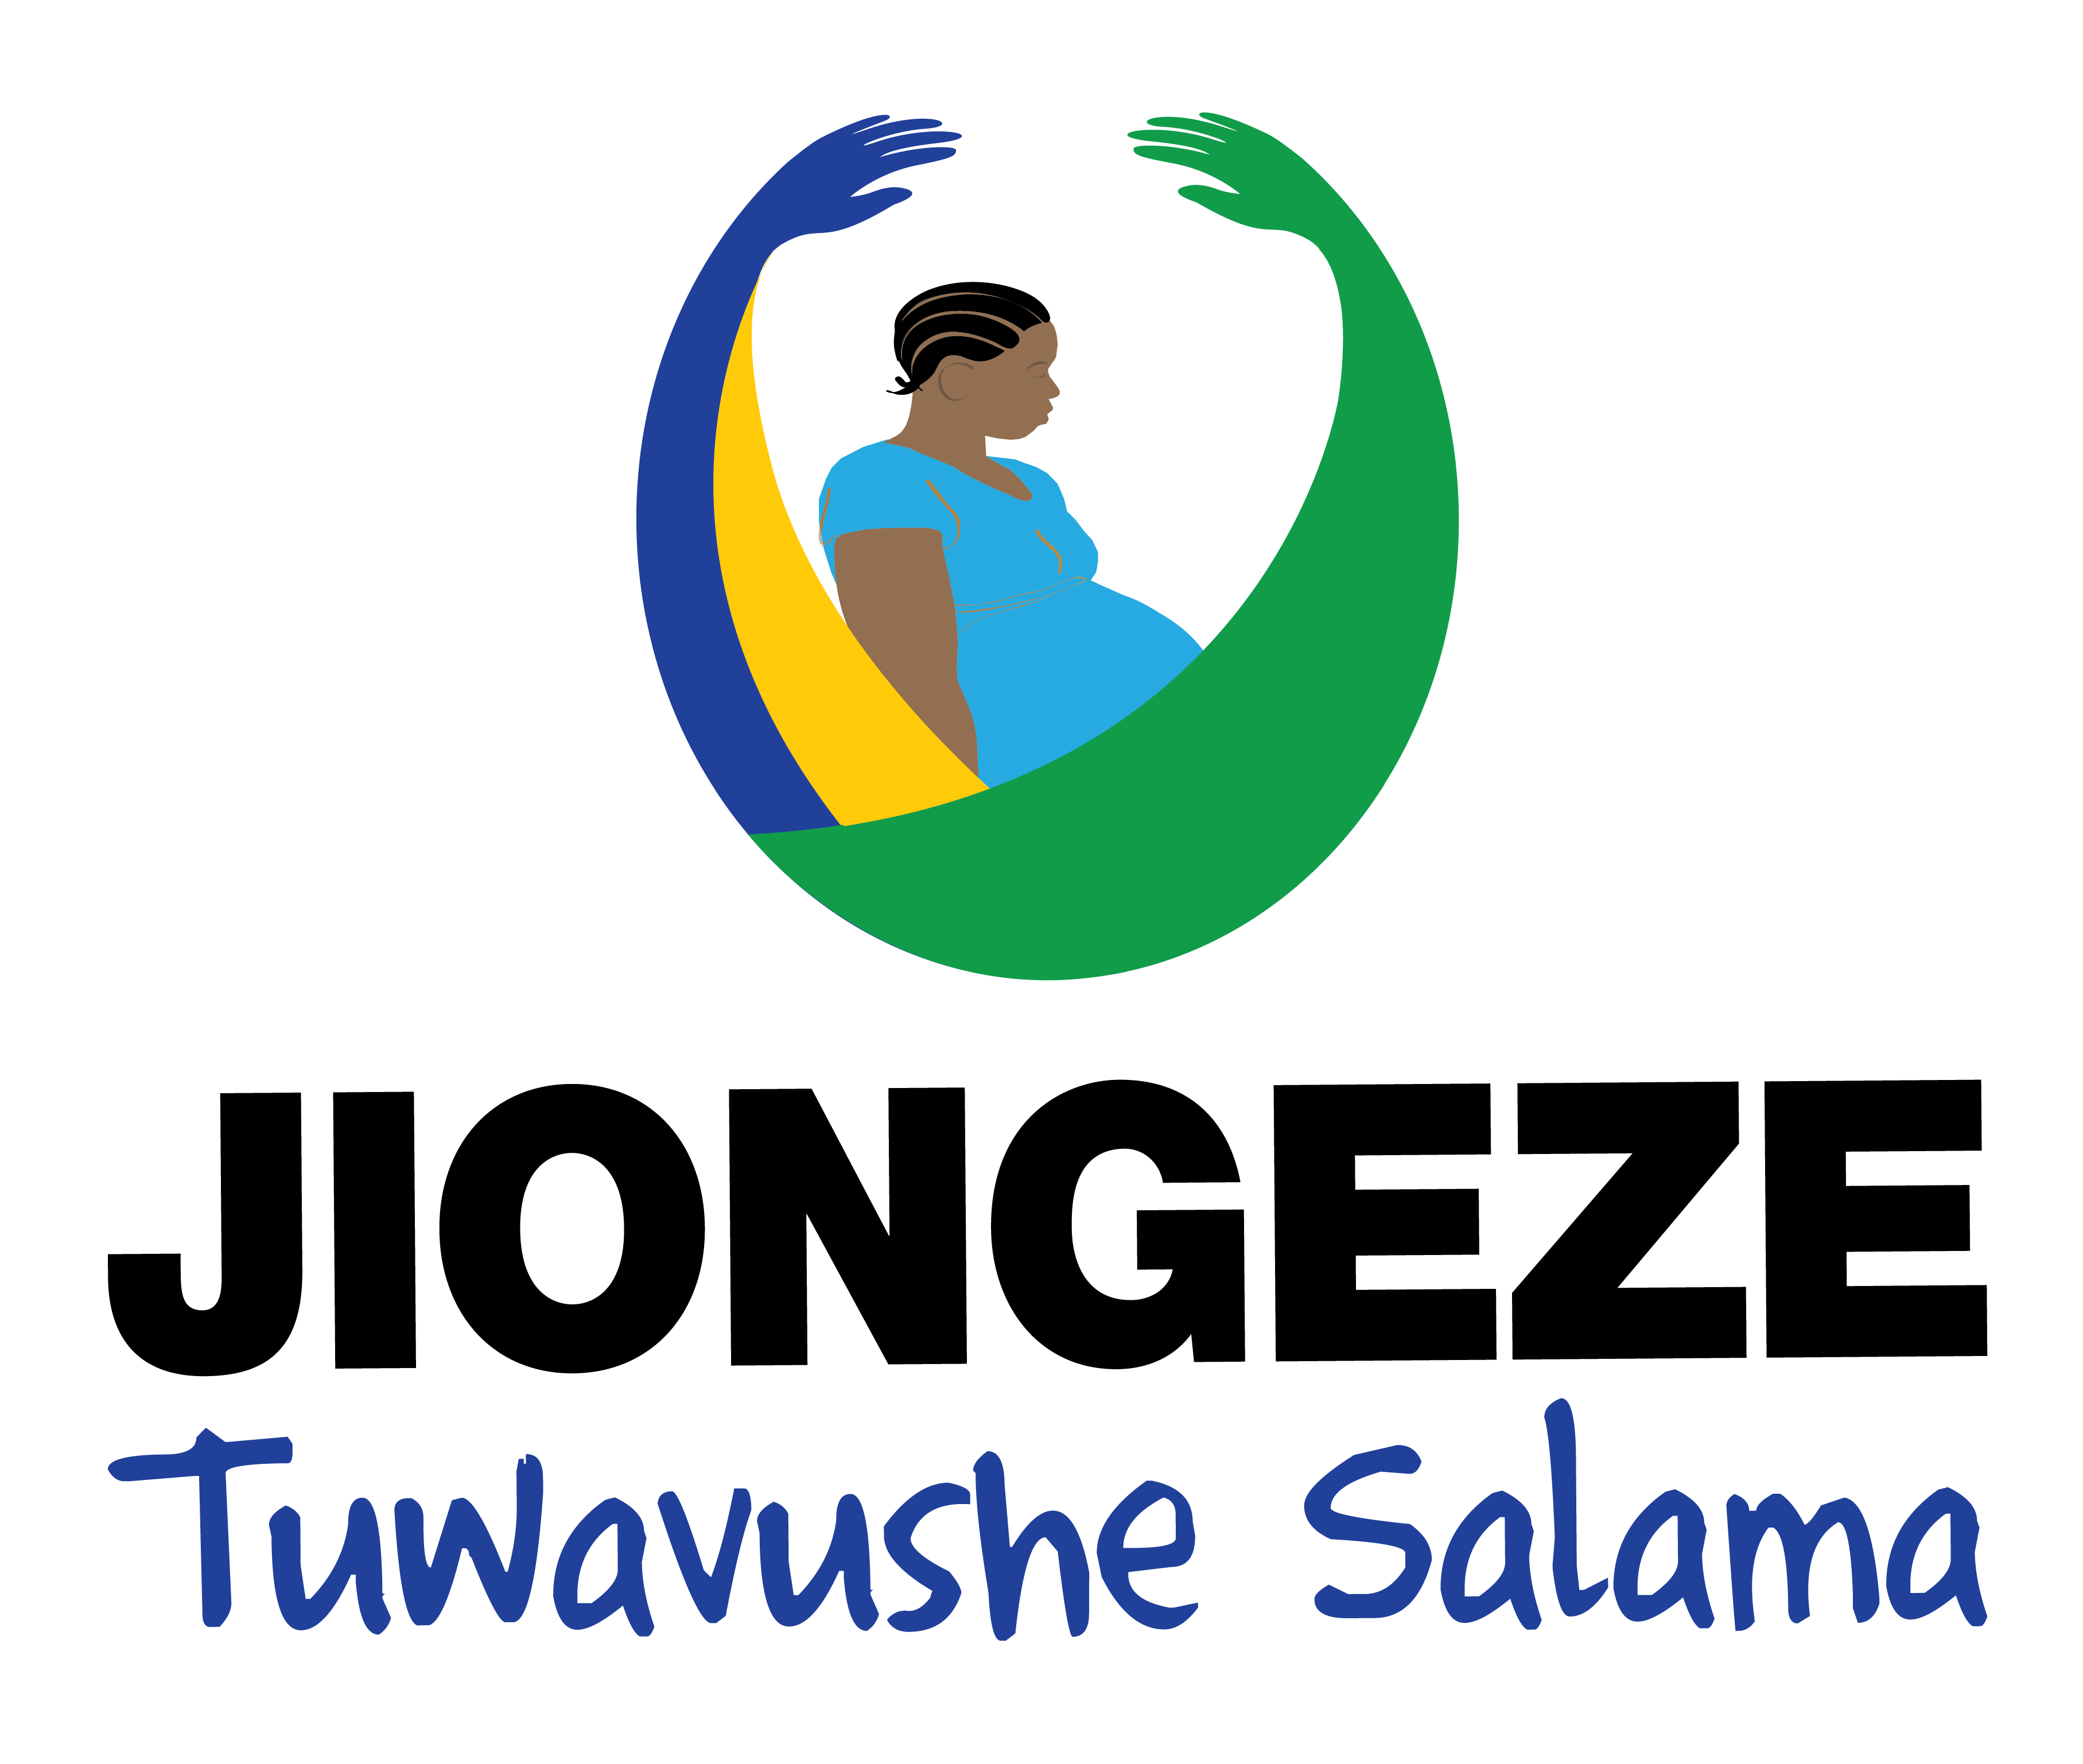 TVP, MINISTRY OF HEALTH AND UNICEF ORGANISE 'JIONGEZE TUWAVUSHE SALAMA'SEMINAR FOR HEALTH STAKEHOLDERS